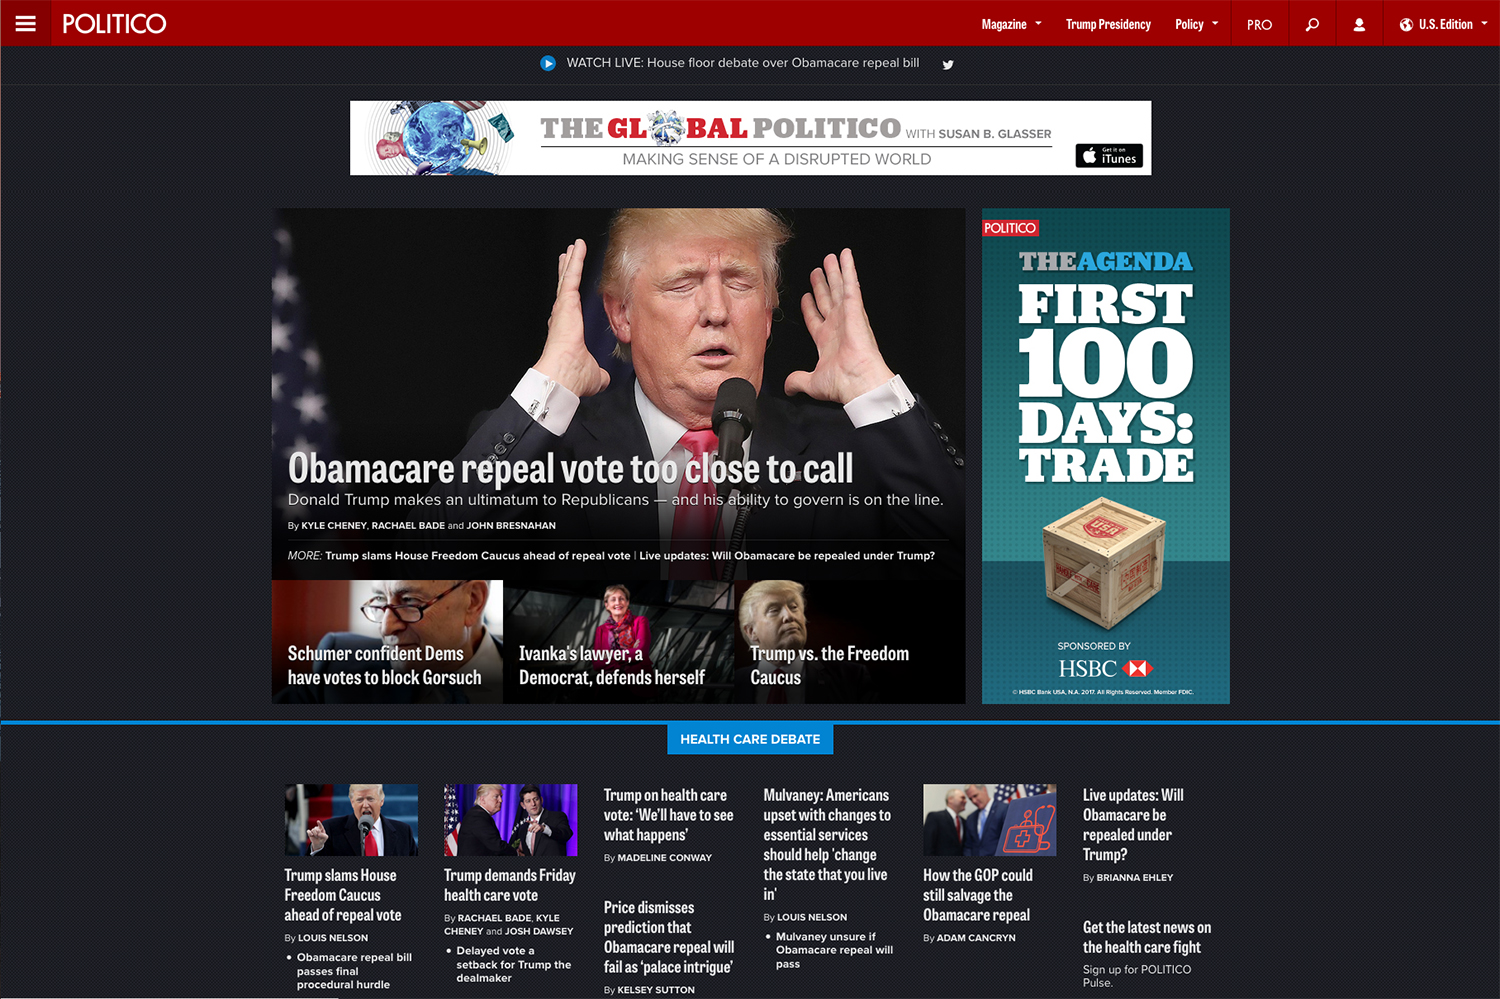 Banner ad and 300x600 pixel ad for Politico's (now improved) website